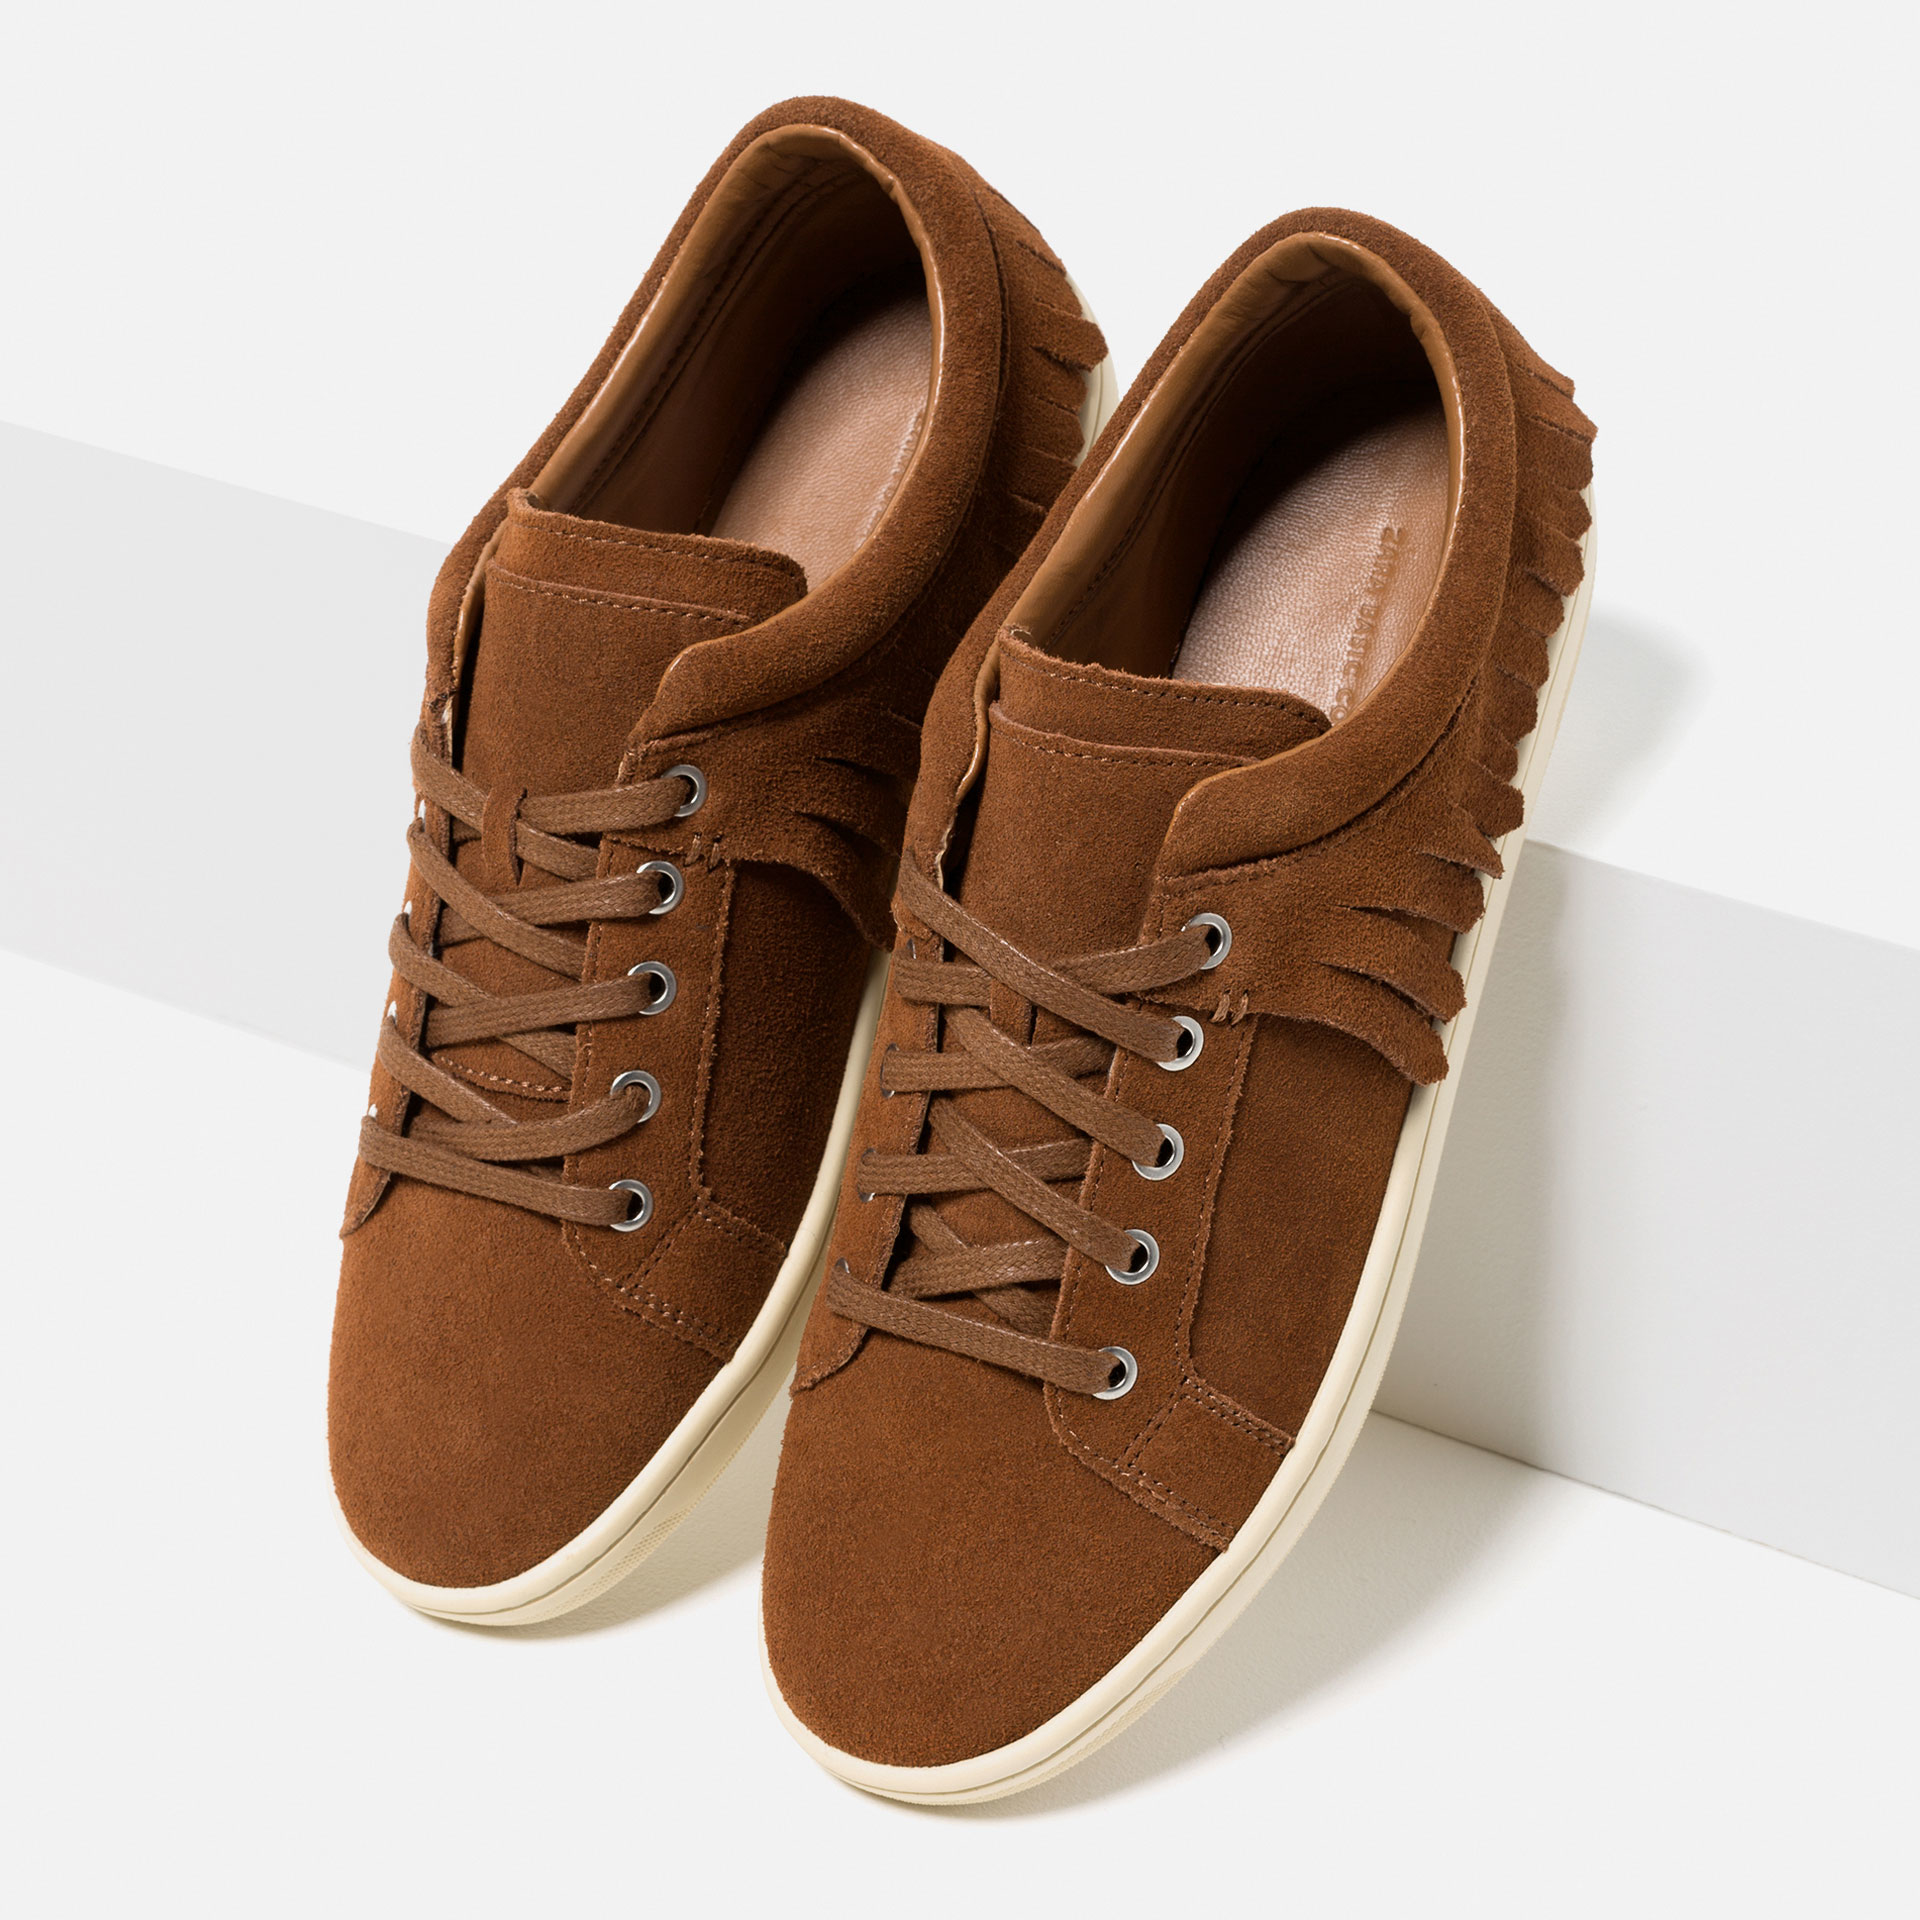 Find great deals on eBay for brown plimsolls. Shop with confidence.